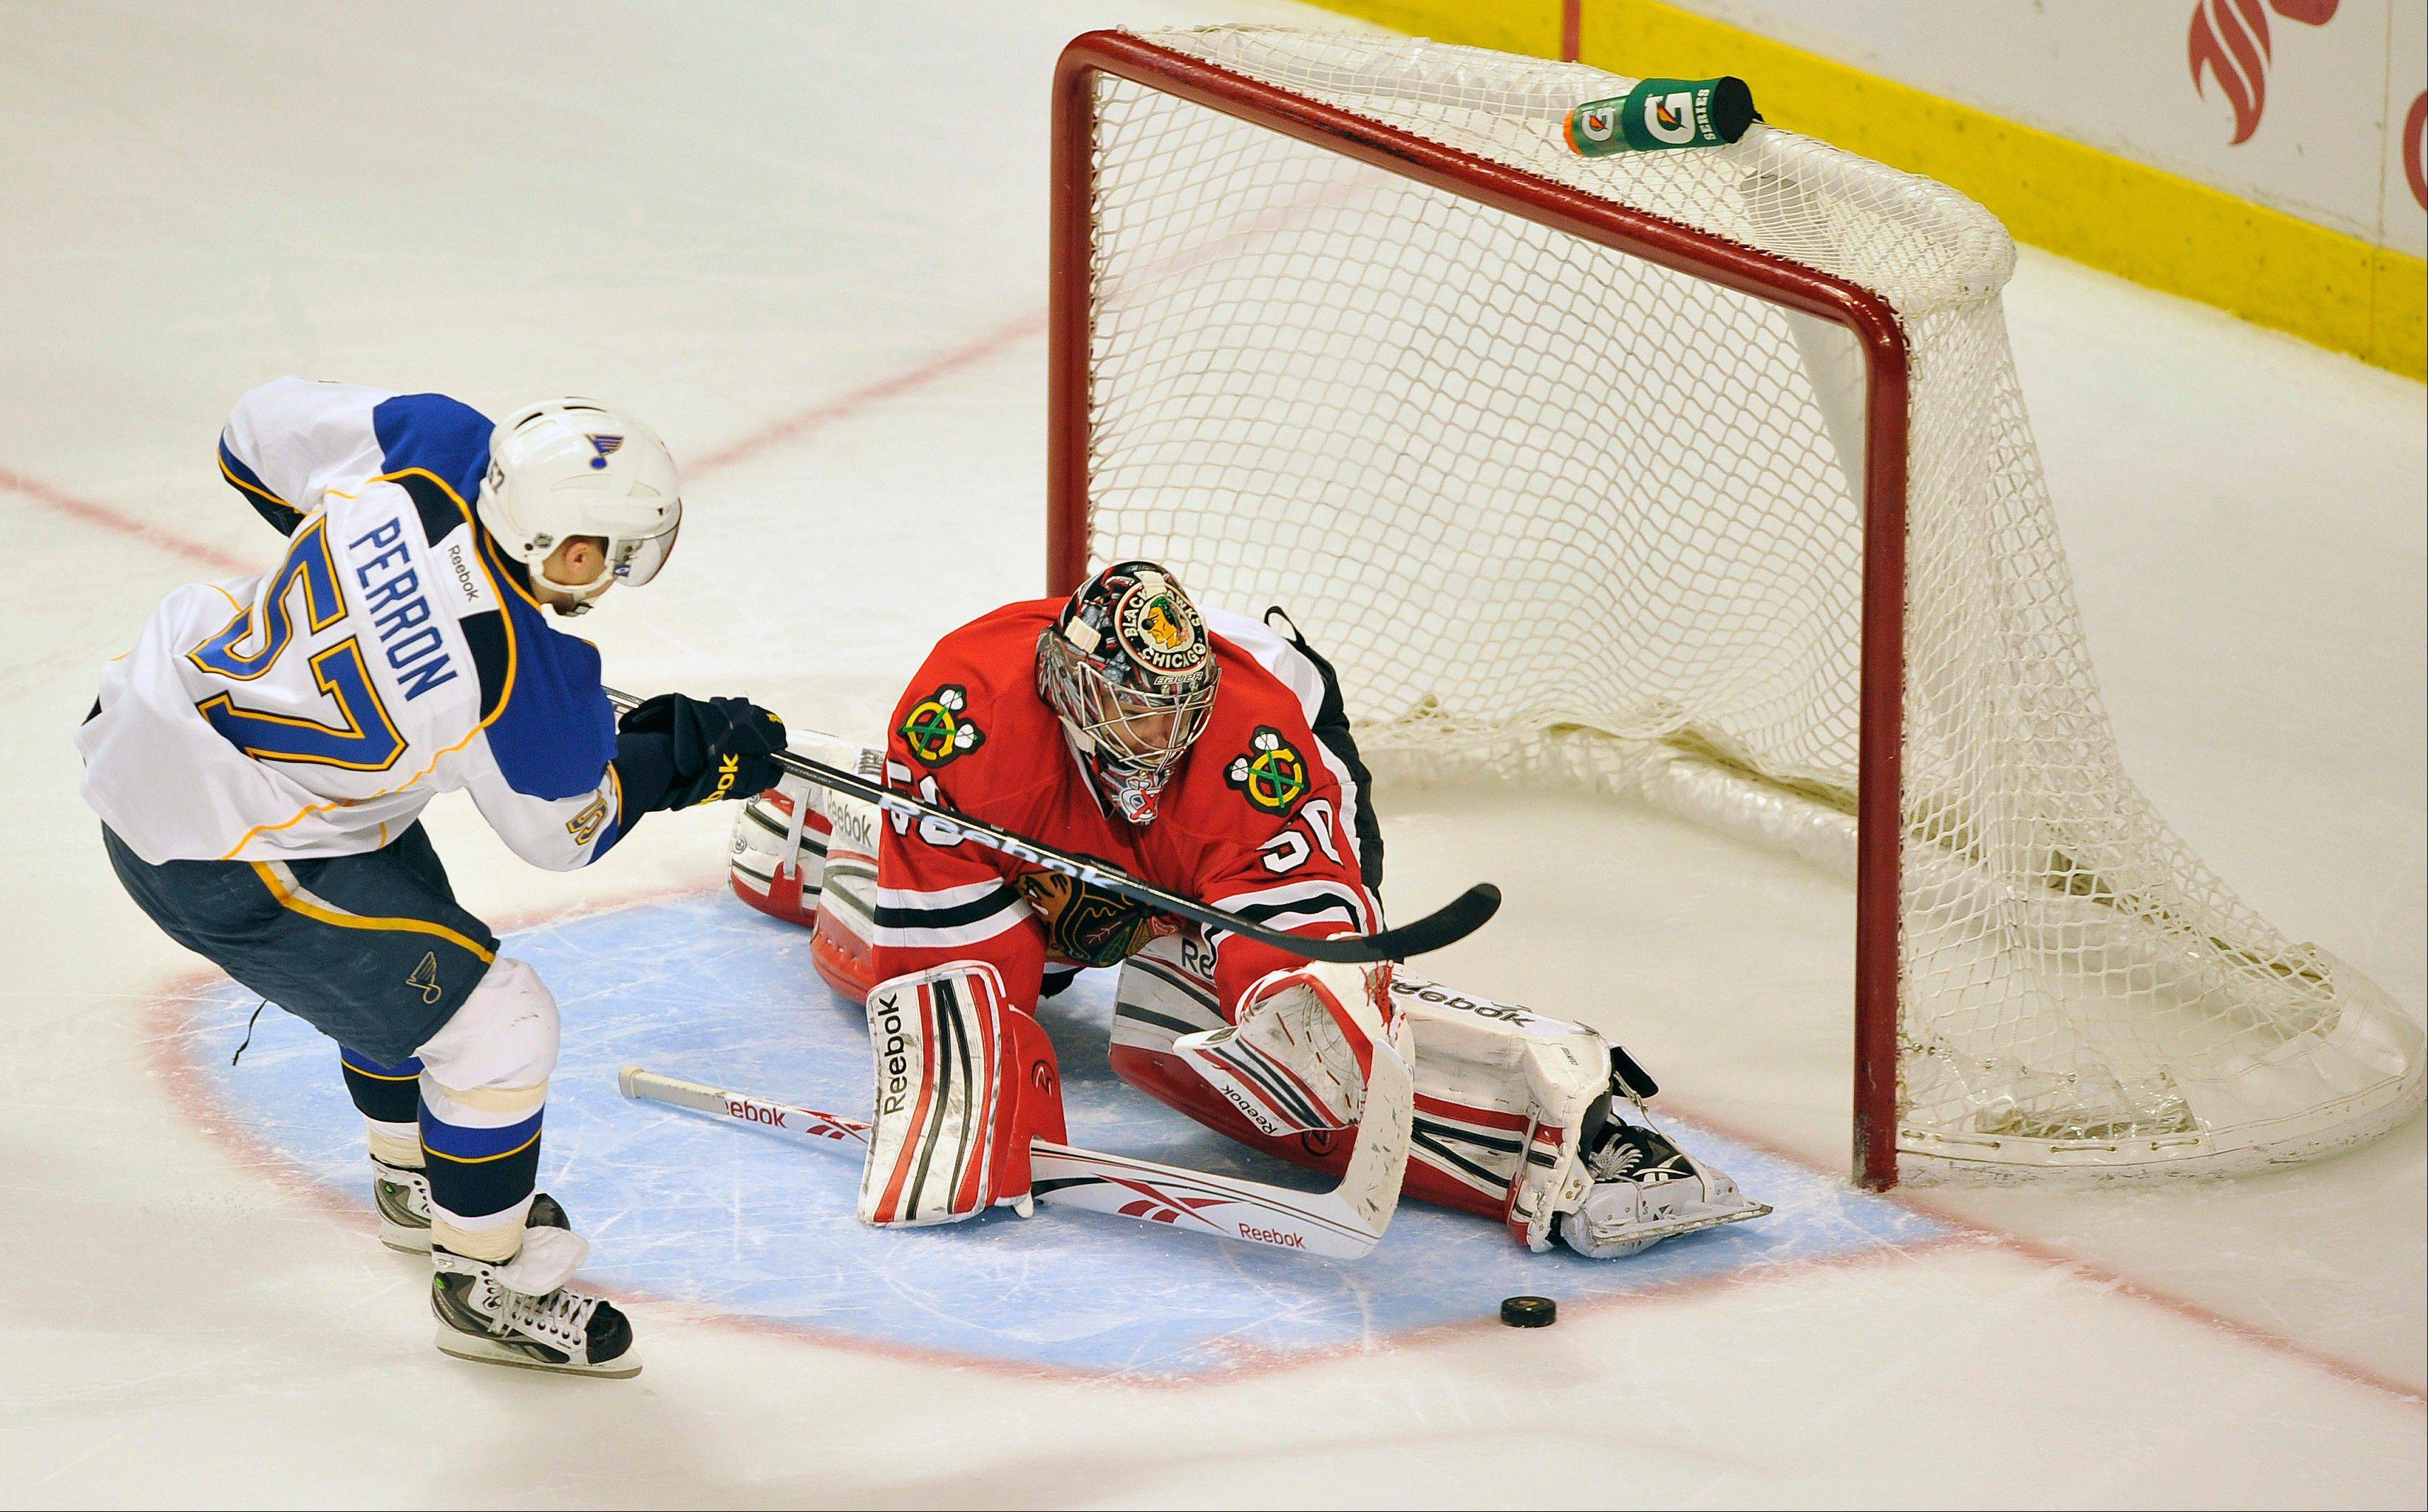 Corey Crawford was named the NHL's second star of the week thanks to his 3-0 record and .948 save percentage.